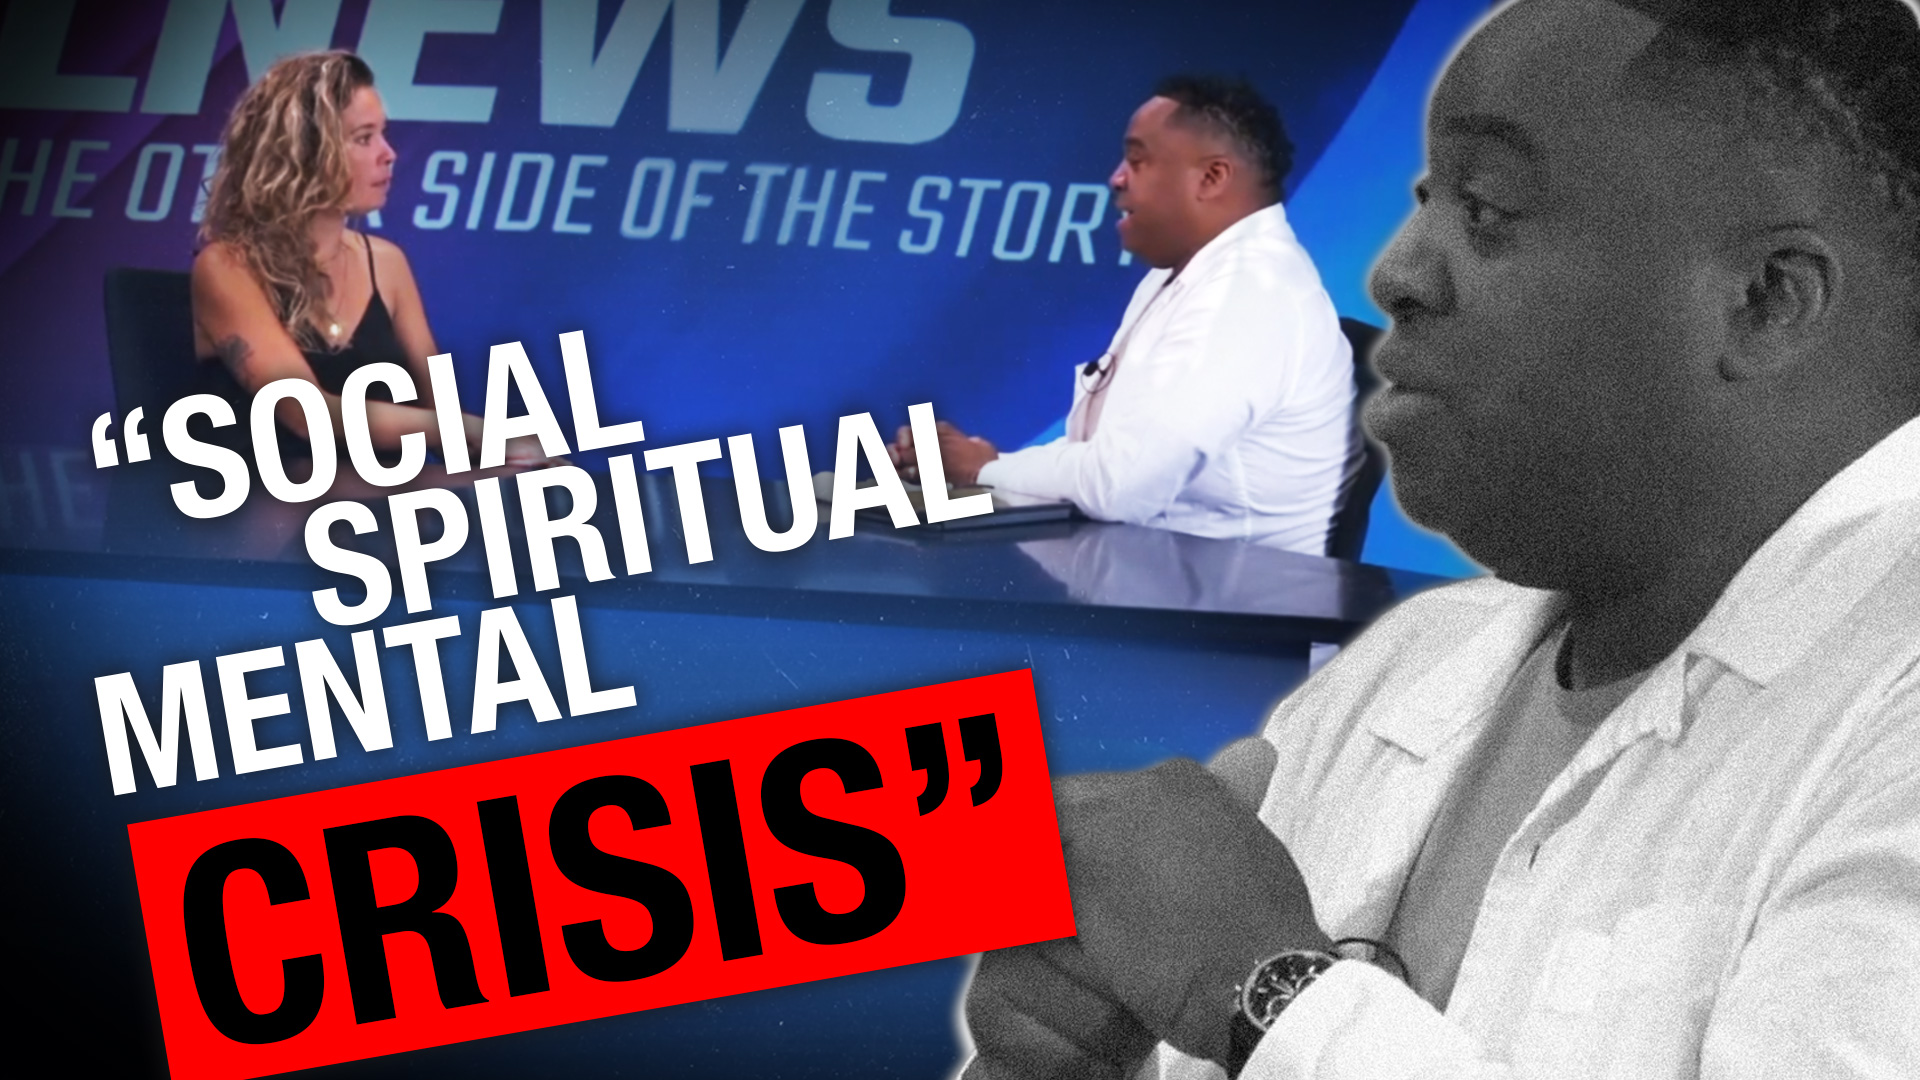 Another pastor targeted by police and mainstream media